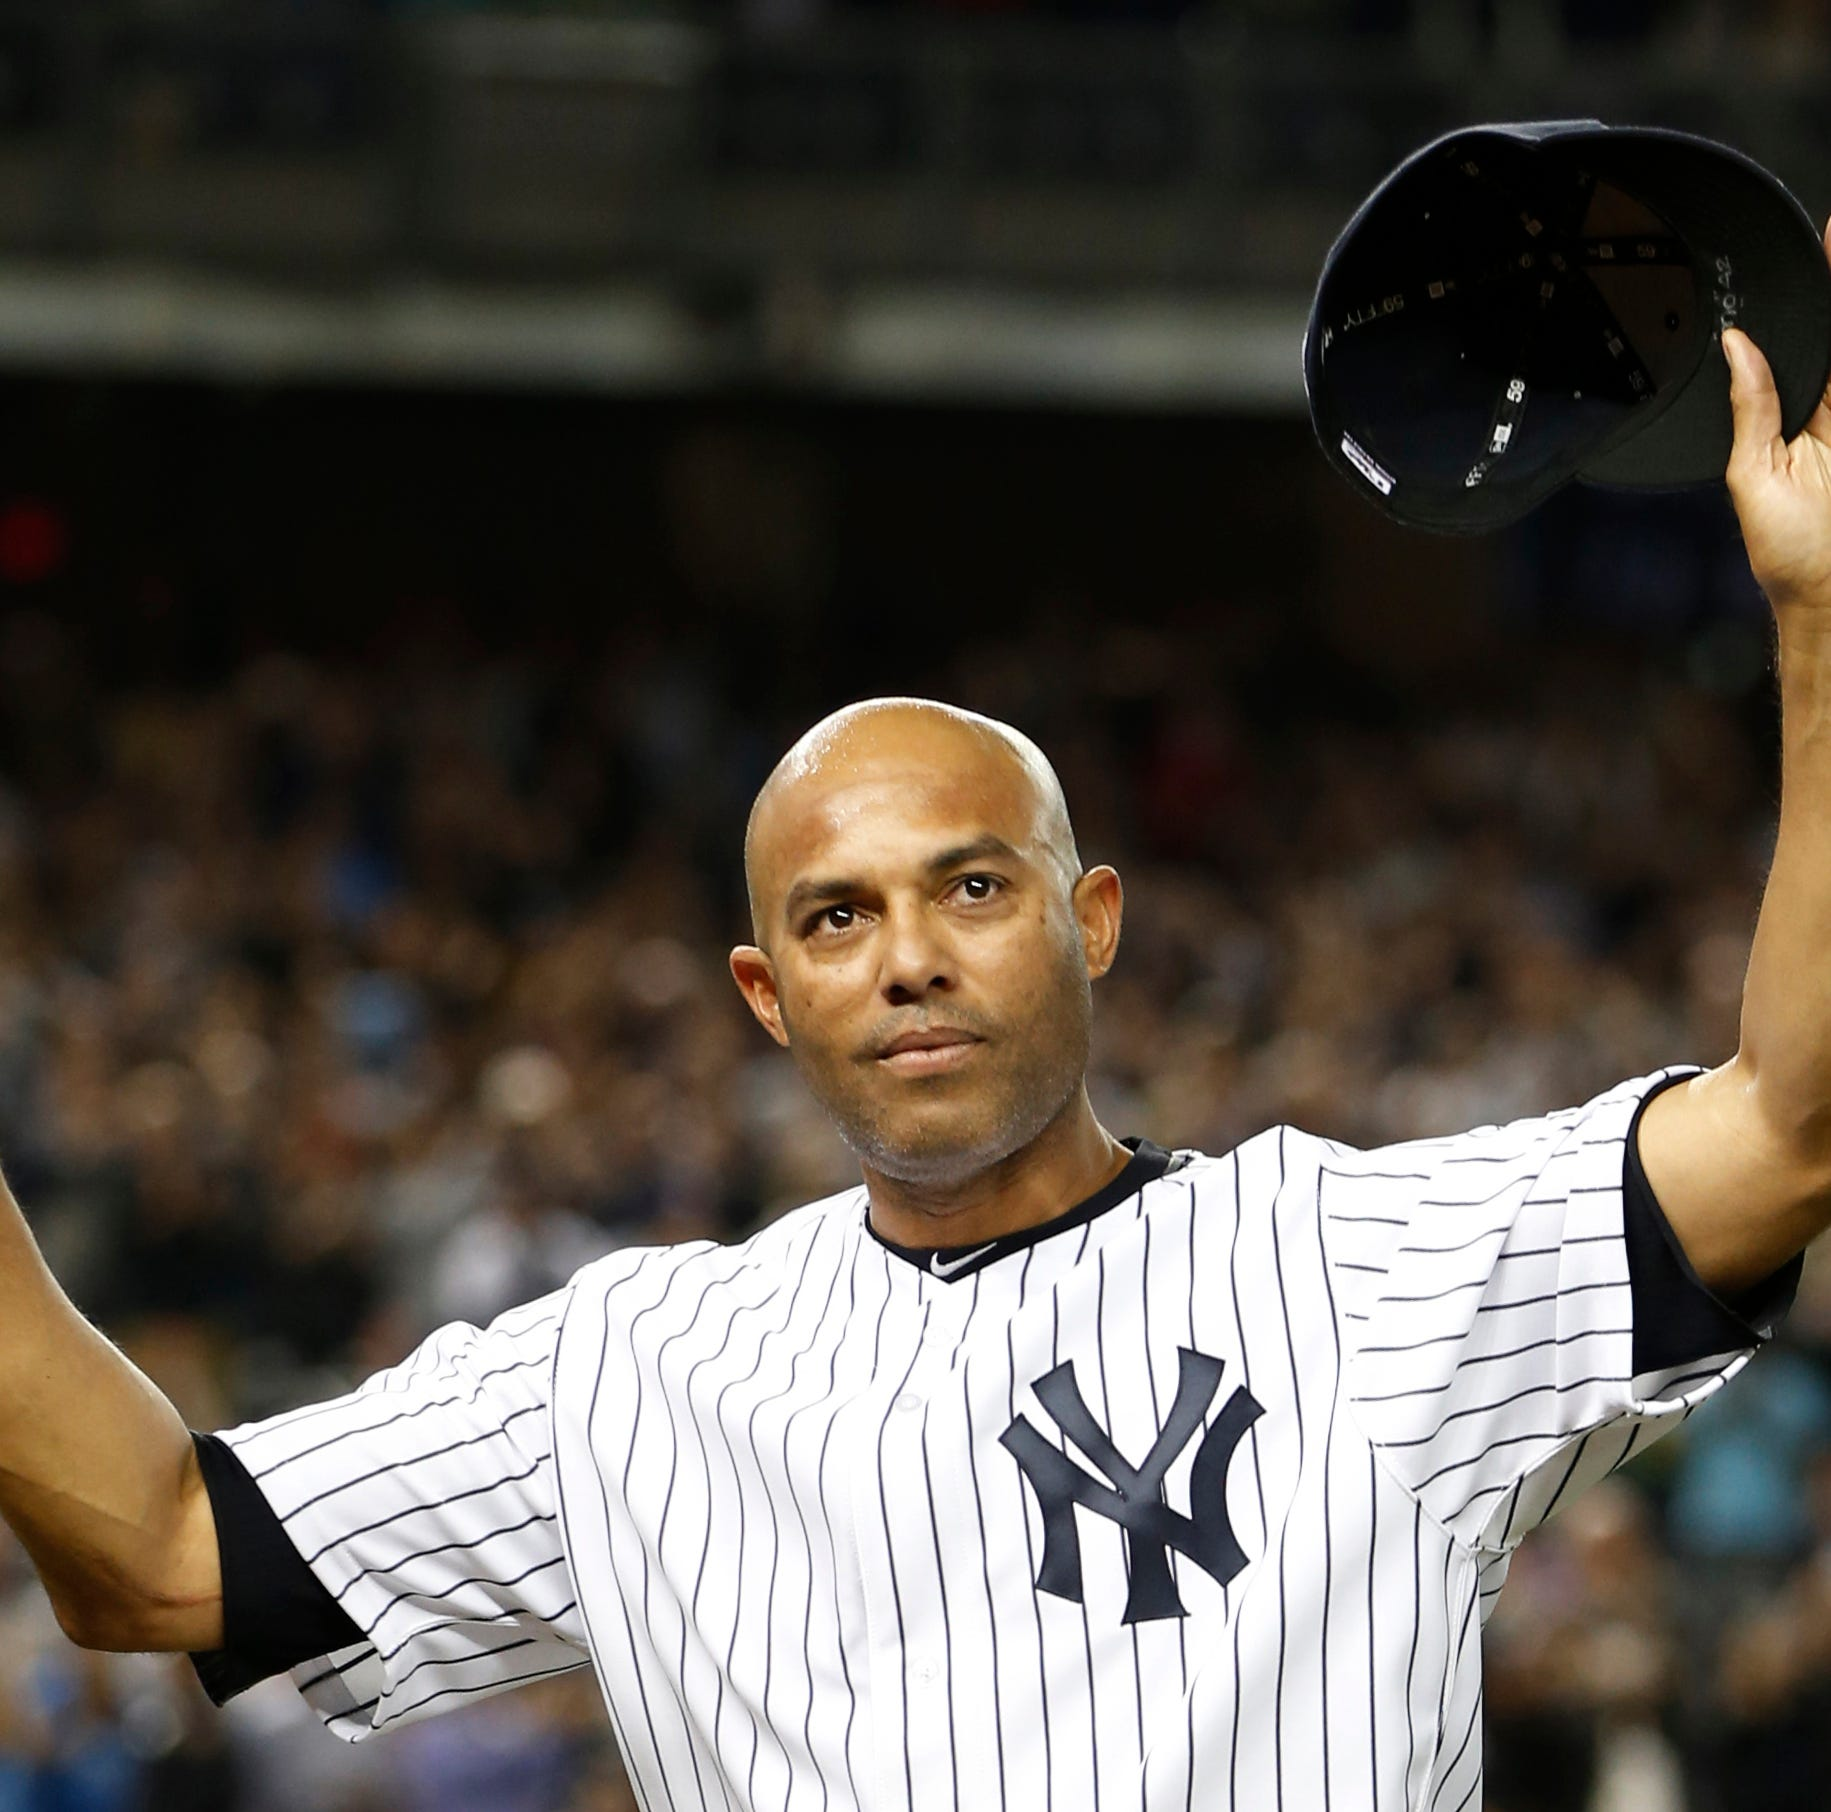 Mariano Rivera joins Roy Halladay, Edgar Martinez, Mike Mussina in Baseball Hall of Fame